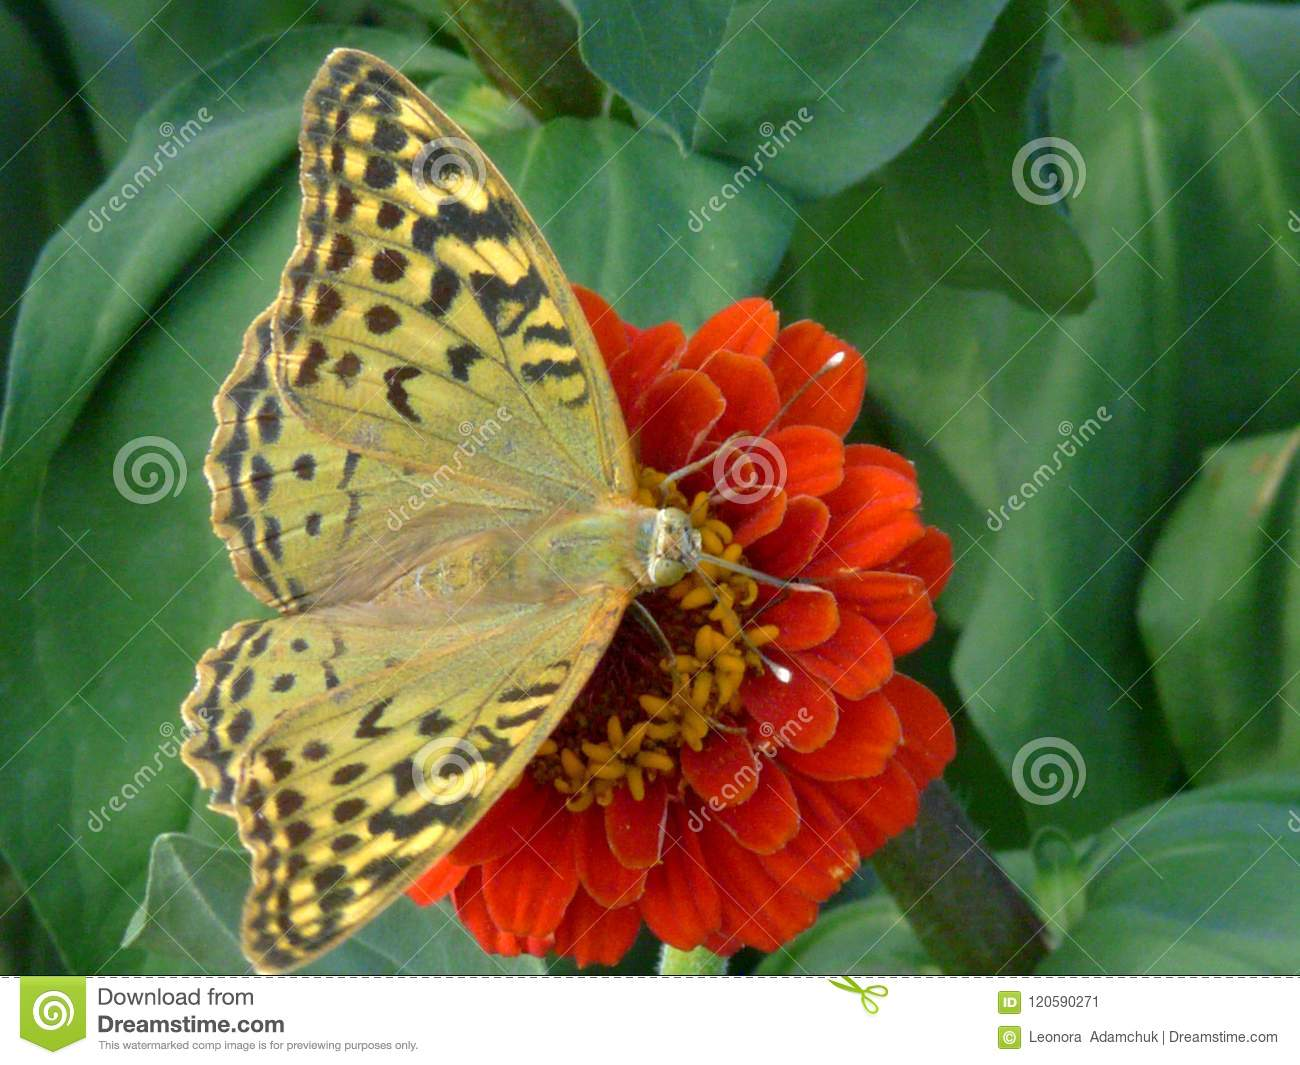 Butterfly of sand color on an orange flower